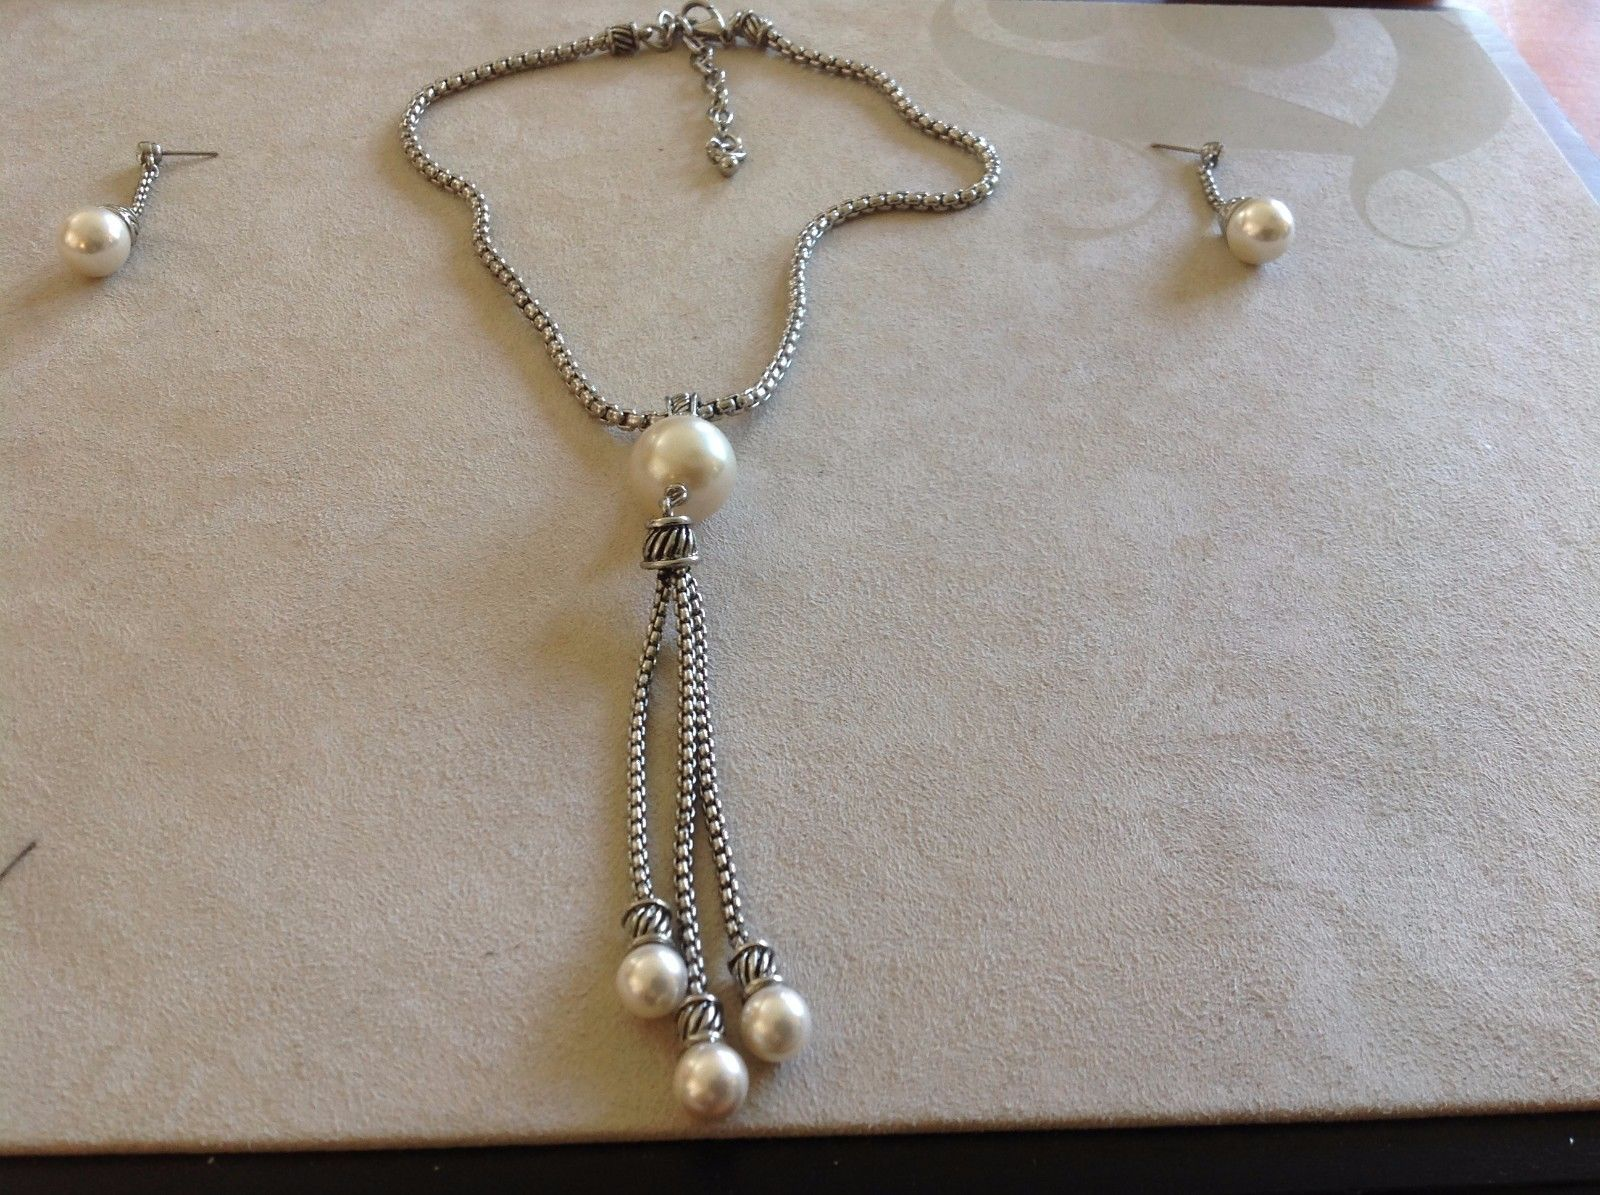 New Chain Link Silver Toned Necklace Simulated Pearl Charms Earrings